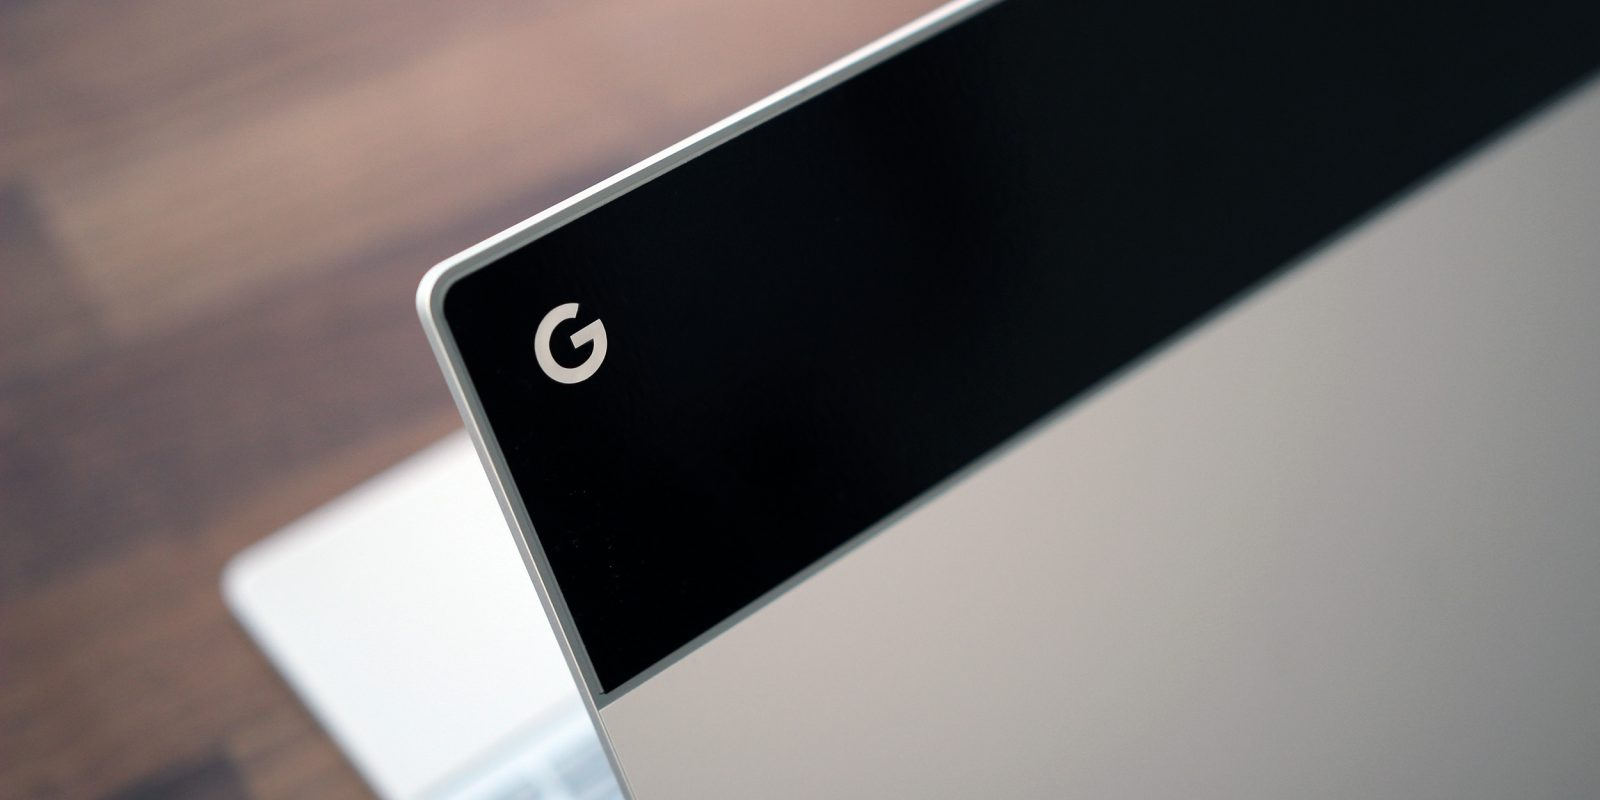 Chrome Os Testing New Wallpaper Picker And System Tray Dark Theme You Can Try Them Now